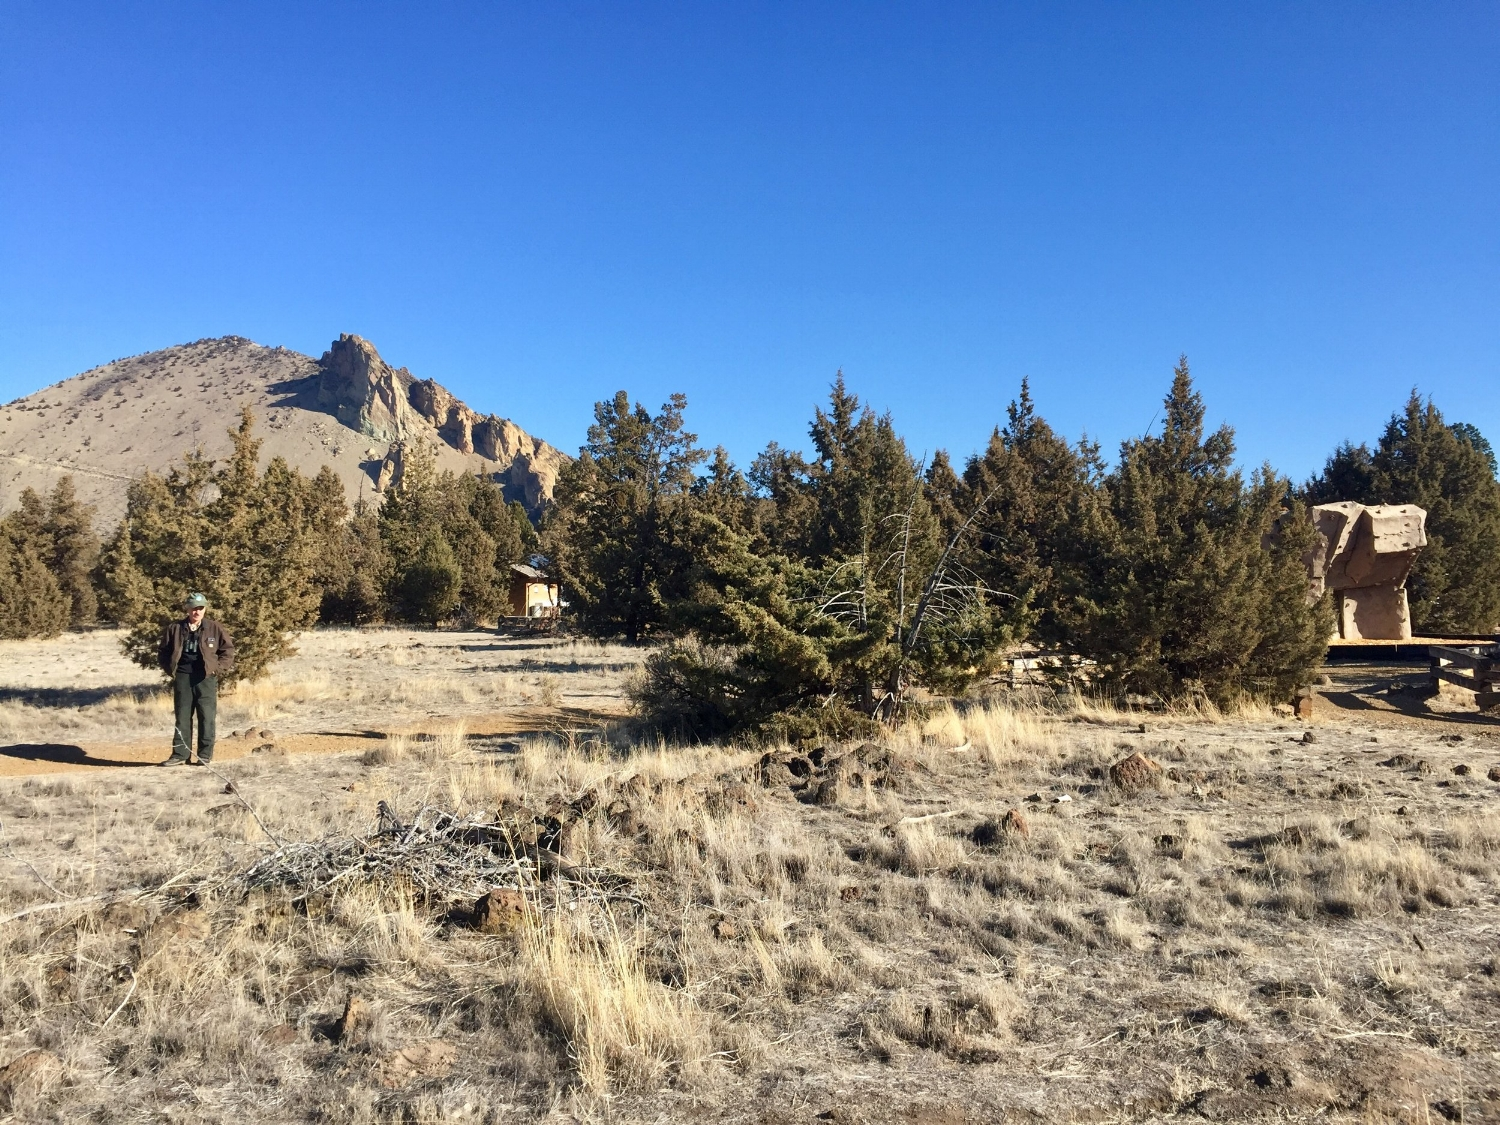 The new Rim Rock Trail extension coming from the South Point Area Lot empties out on to existing trails in the Bivy Campground to continue past the Day Use Area. Click to enlarge.